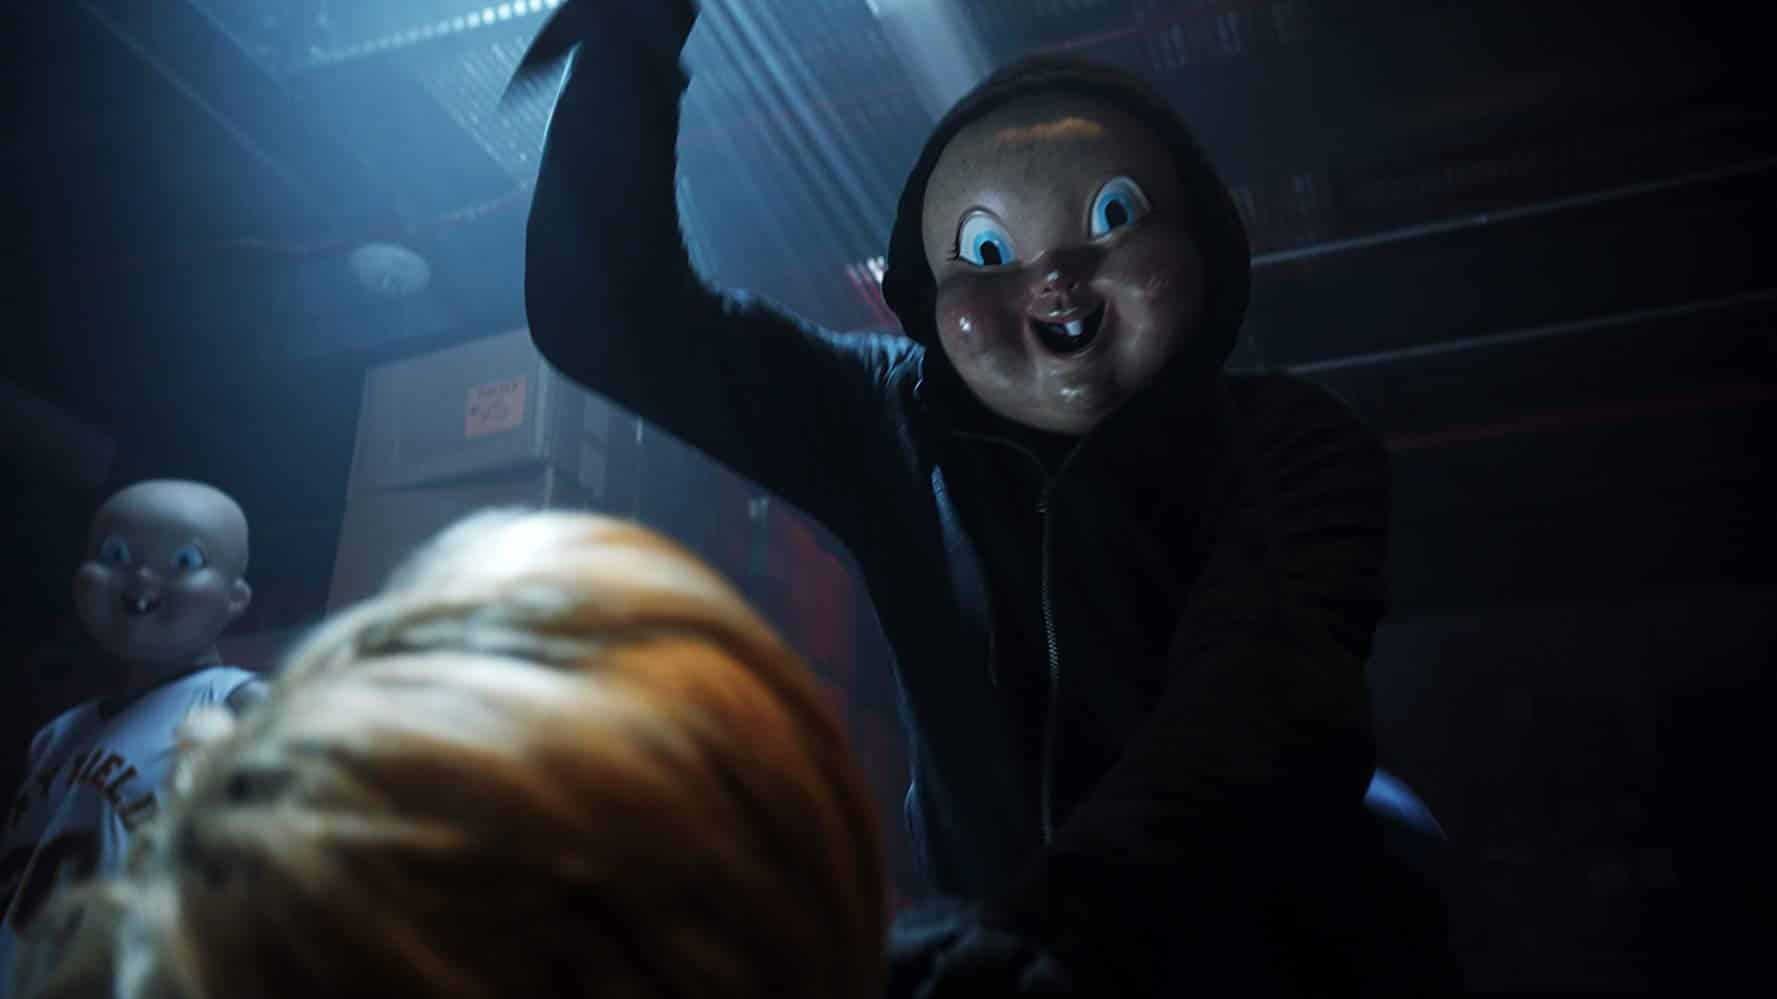 Happy Death Day 2U de Blumhouse libera segundo tráiler oficial